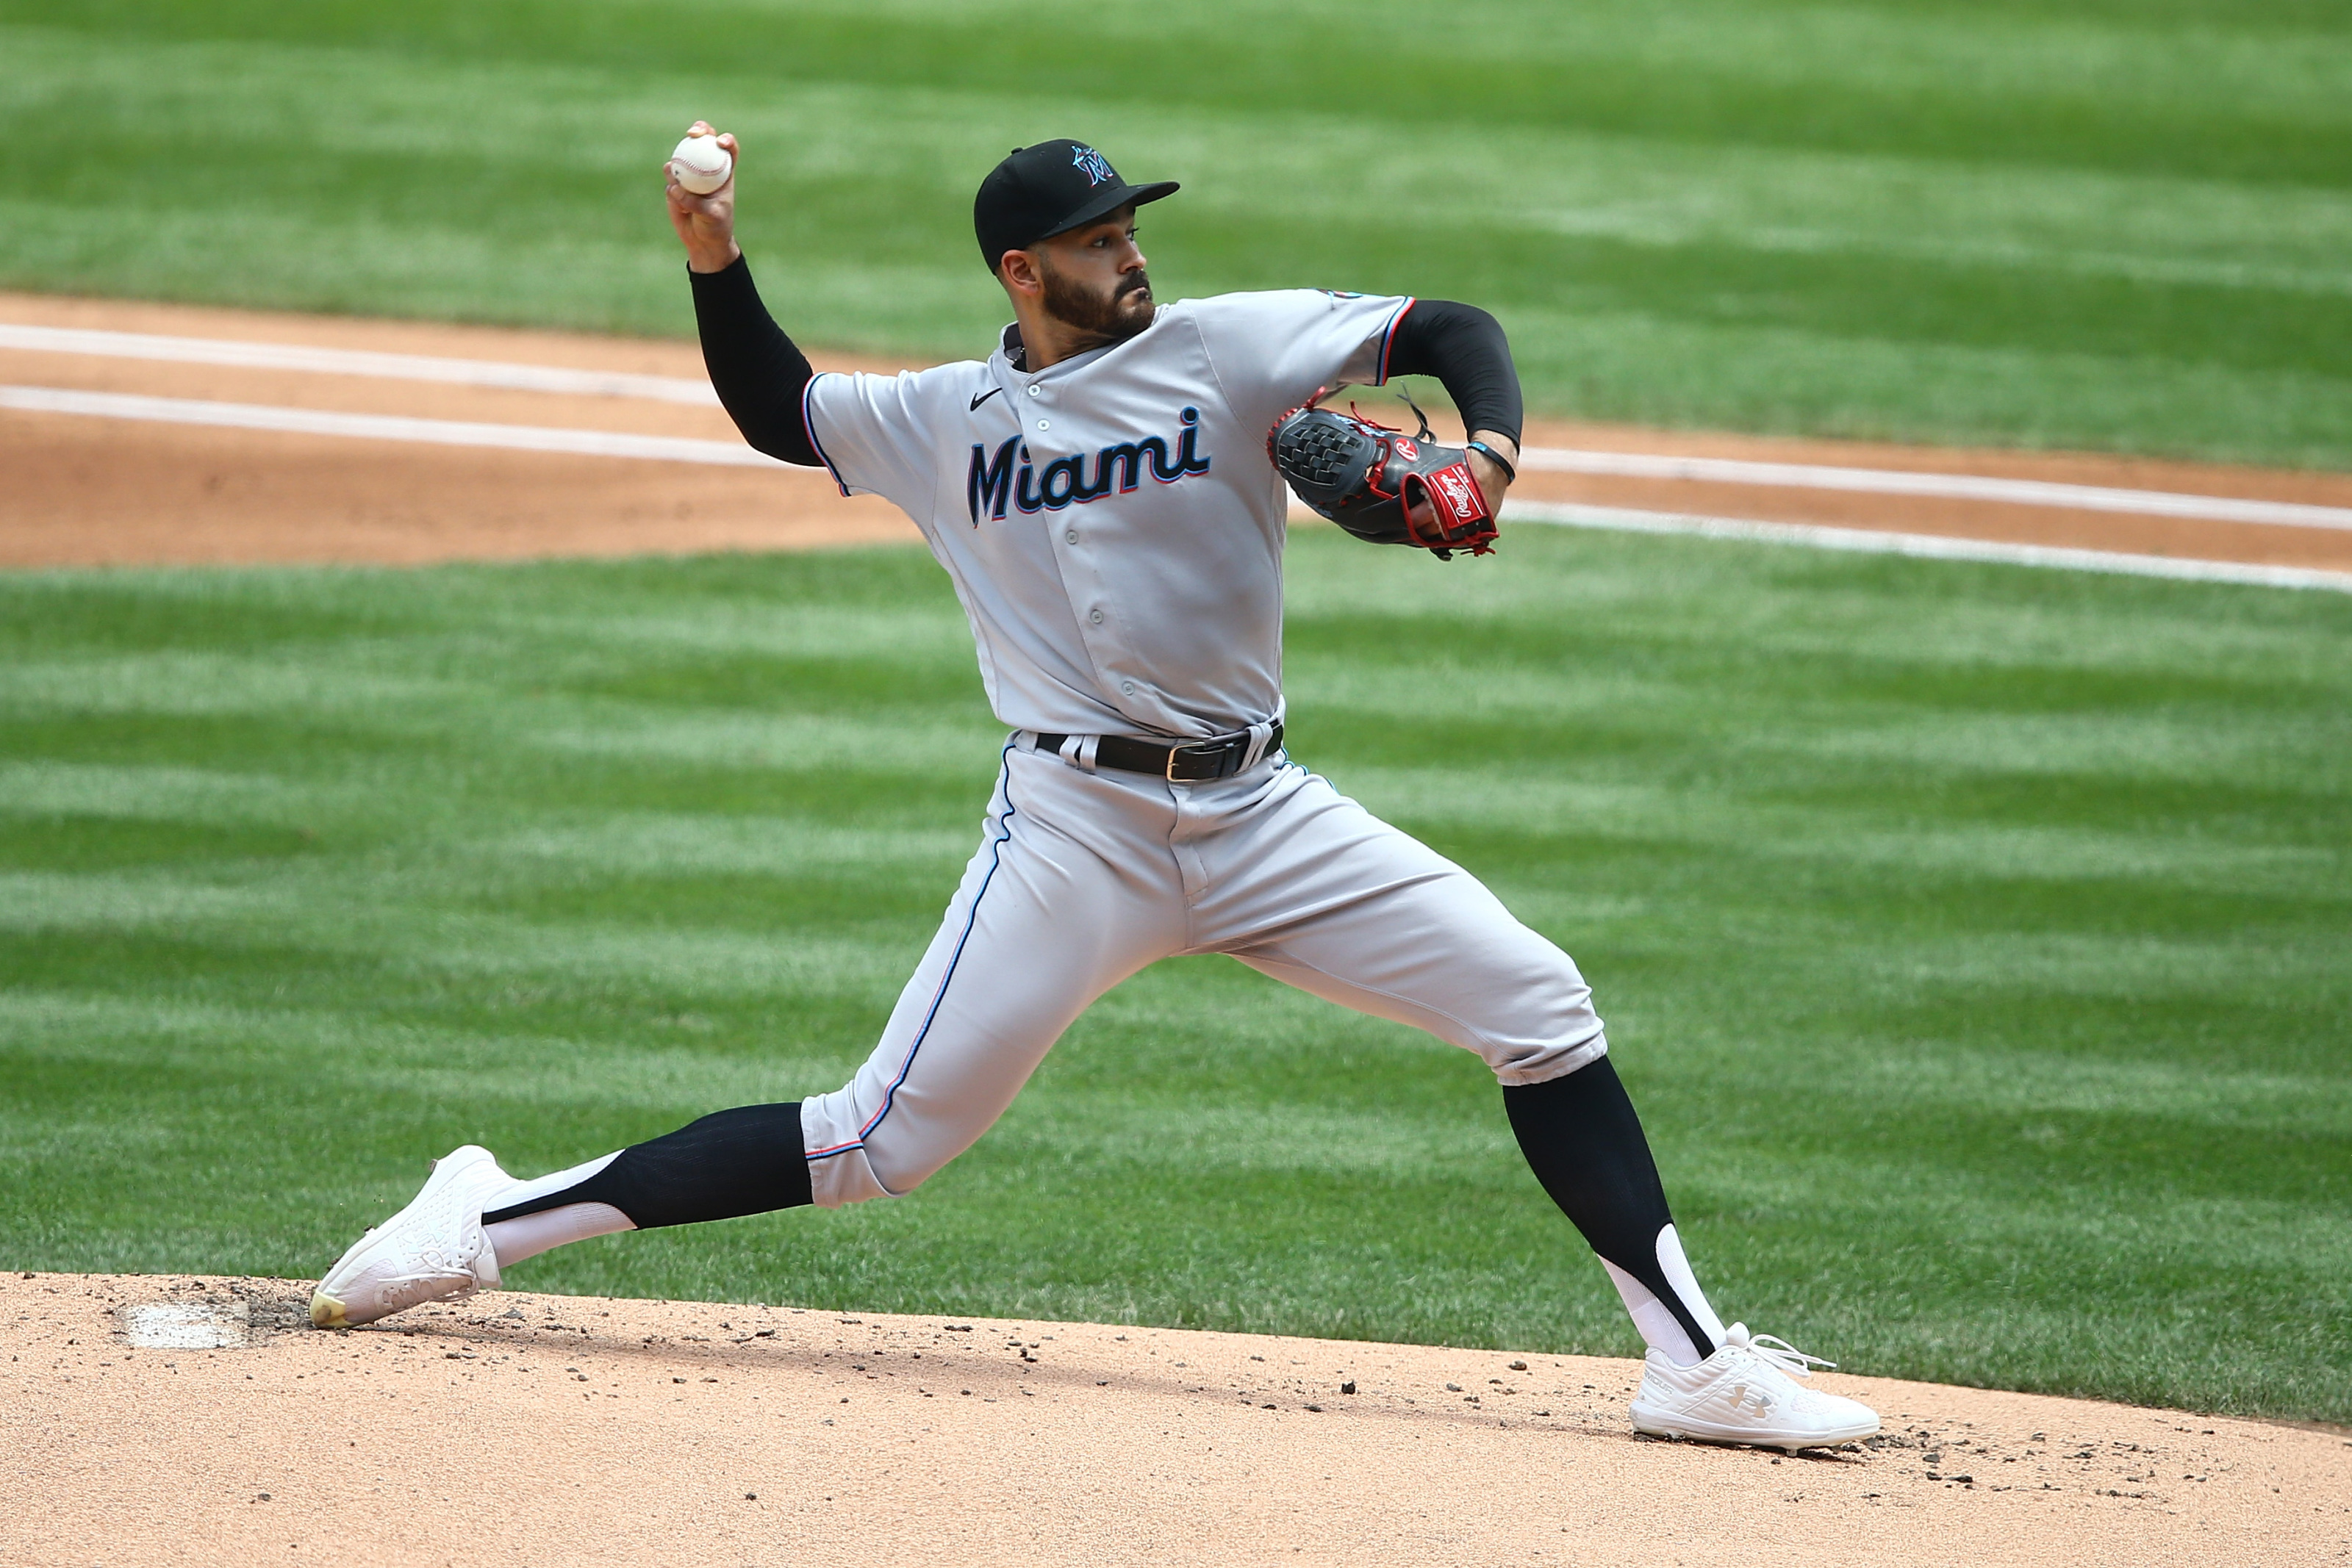 What The Miami Marlins Can Expect From The Atlanta Braves